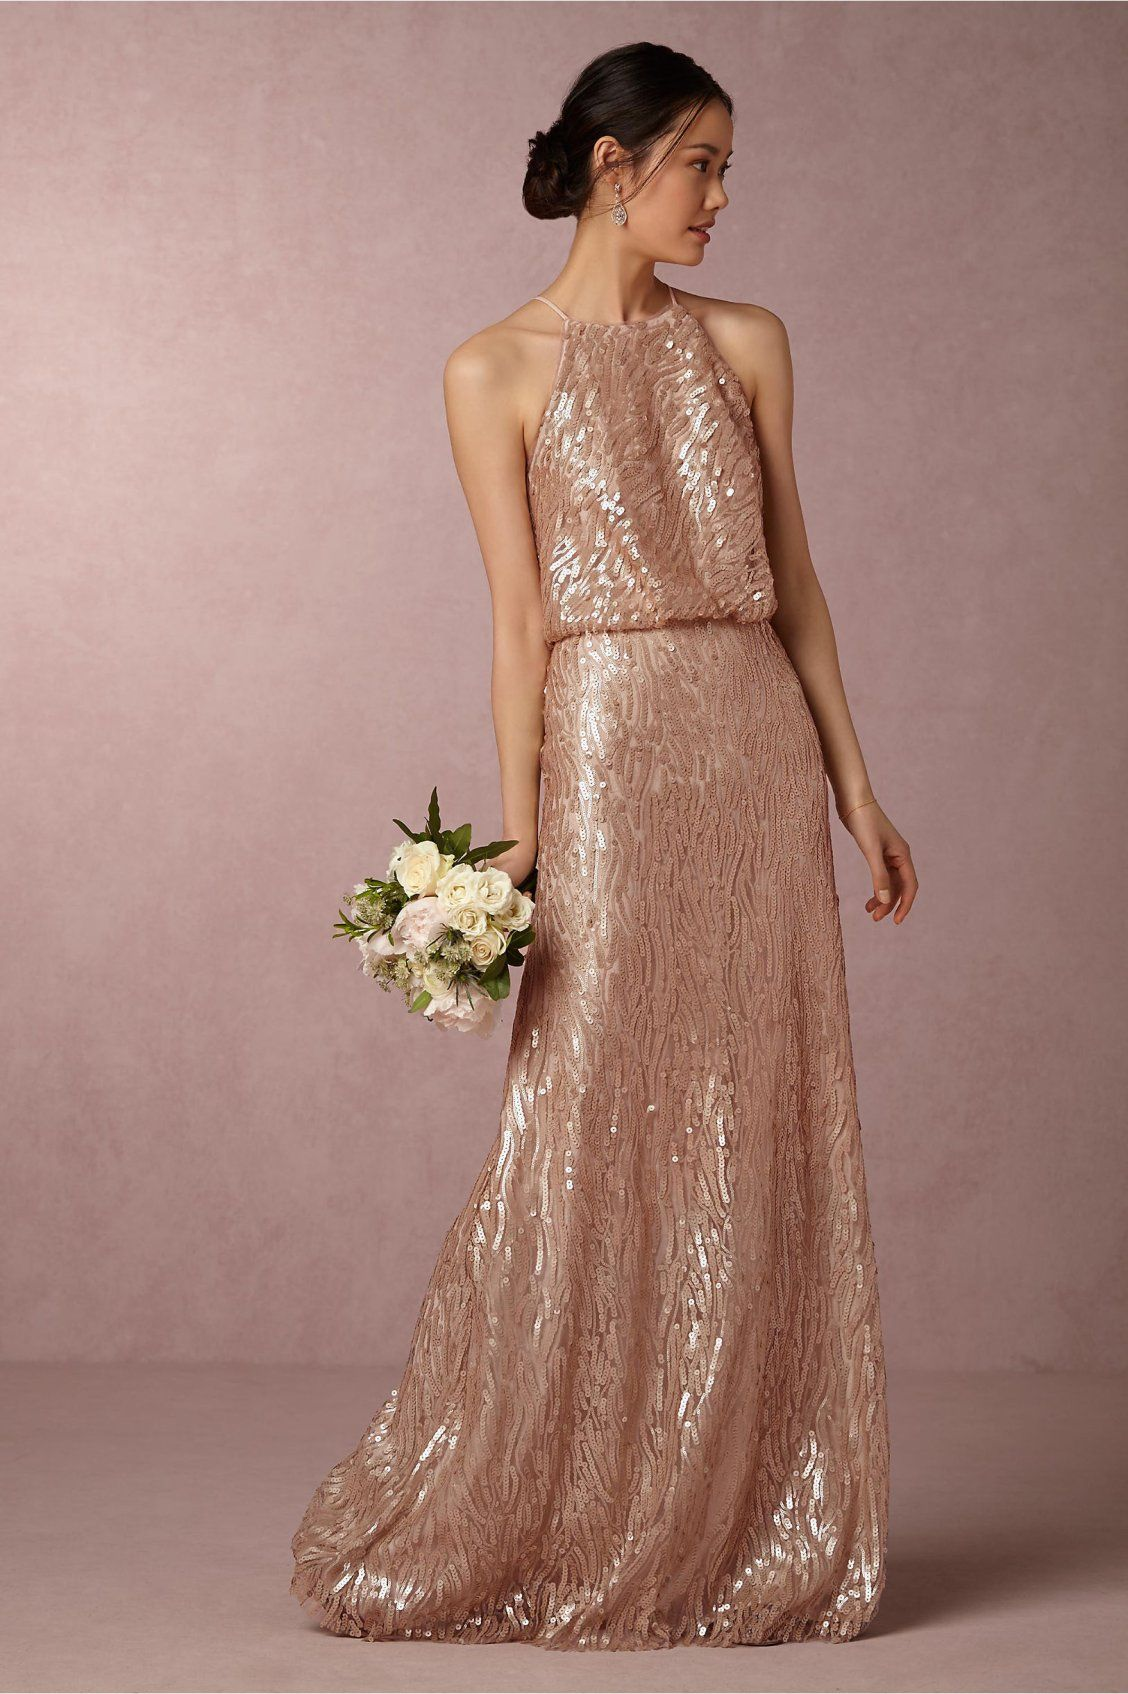 Rose Gold Sequined Alana Dress from BHLDN  Sequin bridesmaid